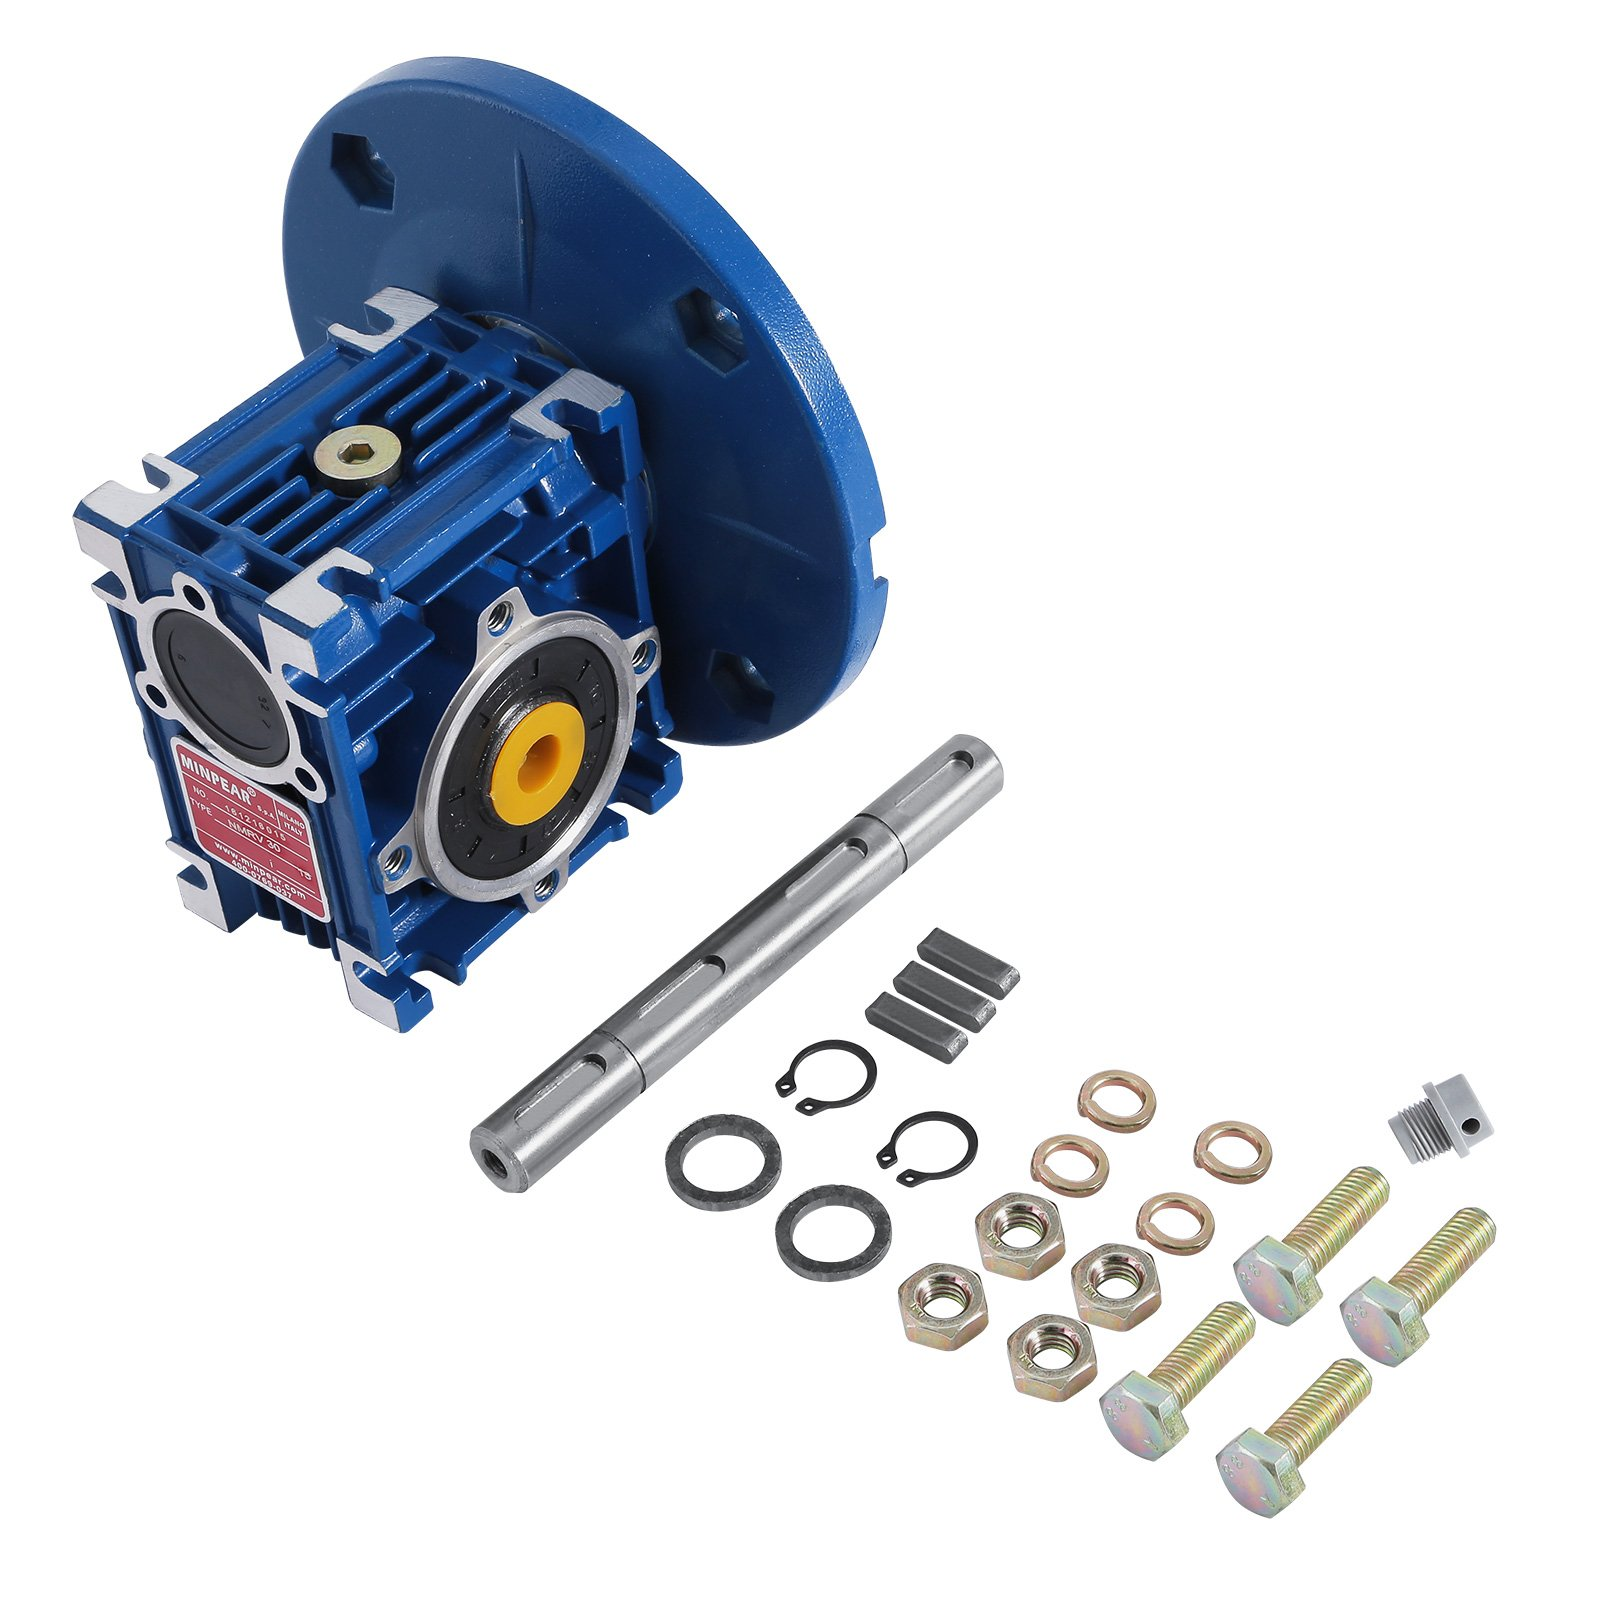 Happybuy Speed Reducer Ratio 15/1 56C Worm Gear Speed Reducer with Double Shaft High Torque Worm Gear Reducer Perfect for Electric Door Mini Crane Hoist